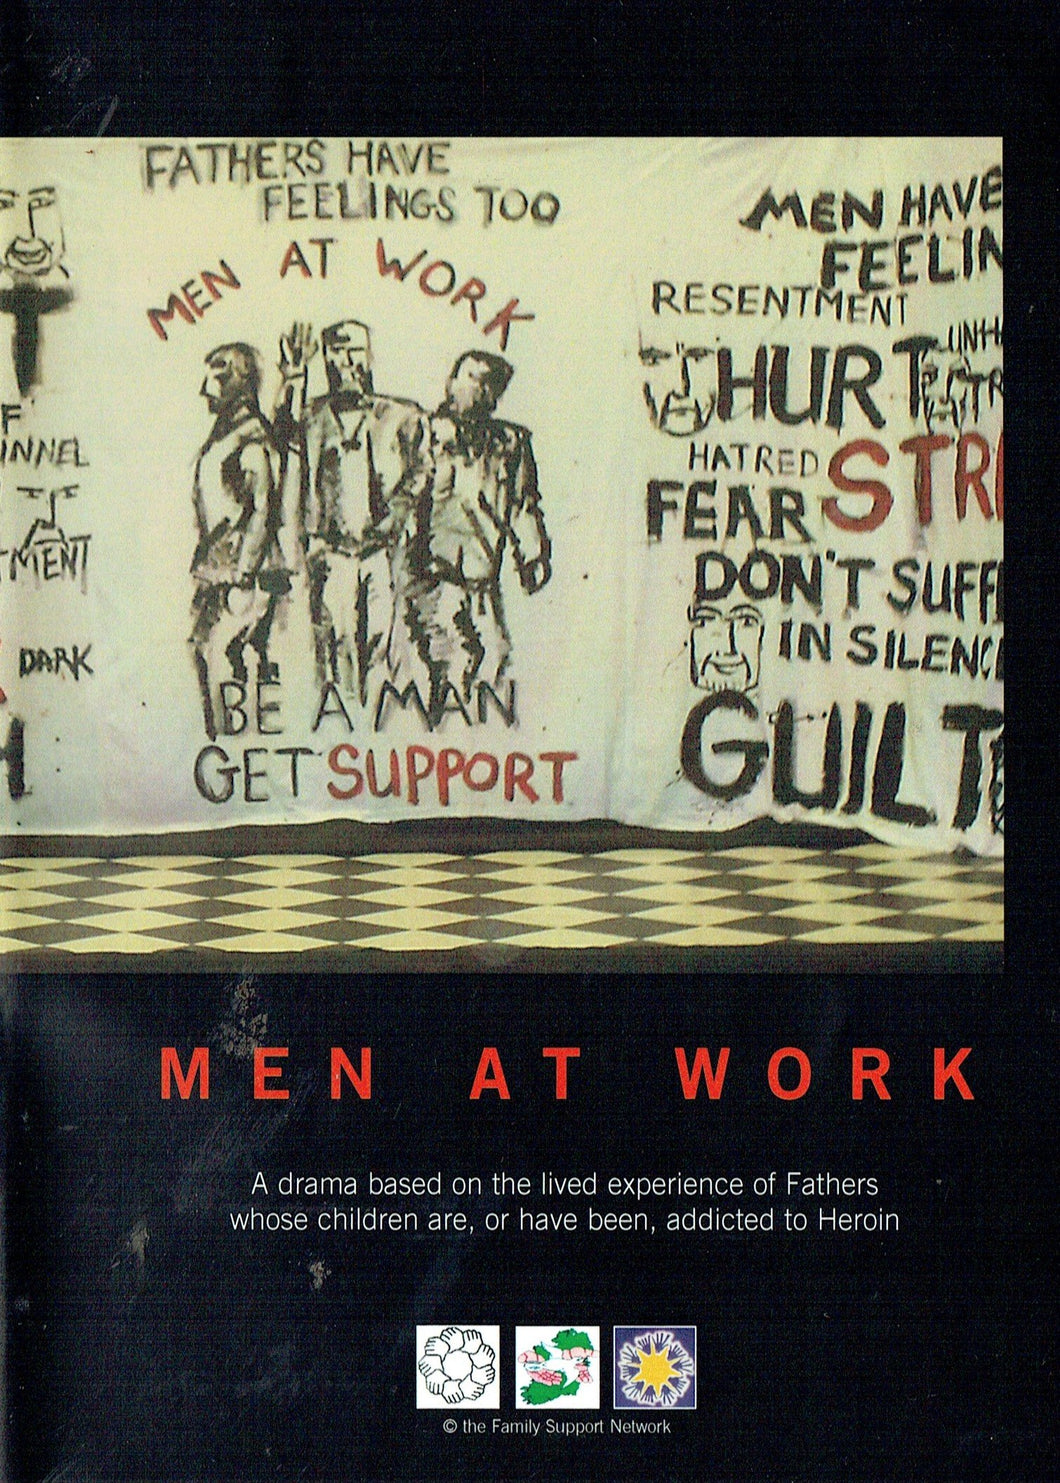 Men at Work: A Drama Based on the Lived Experience of Fathers whose Children are, or have been, Addicted to Heroin